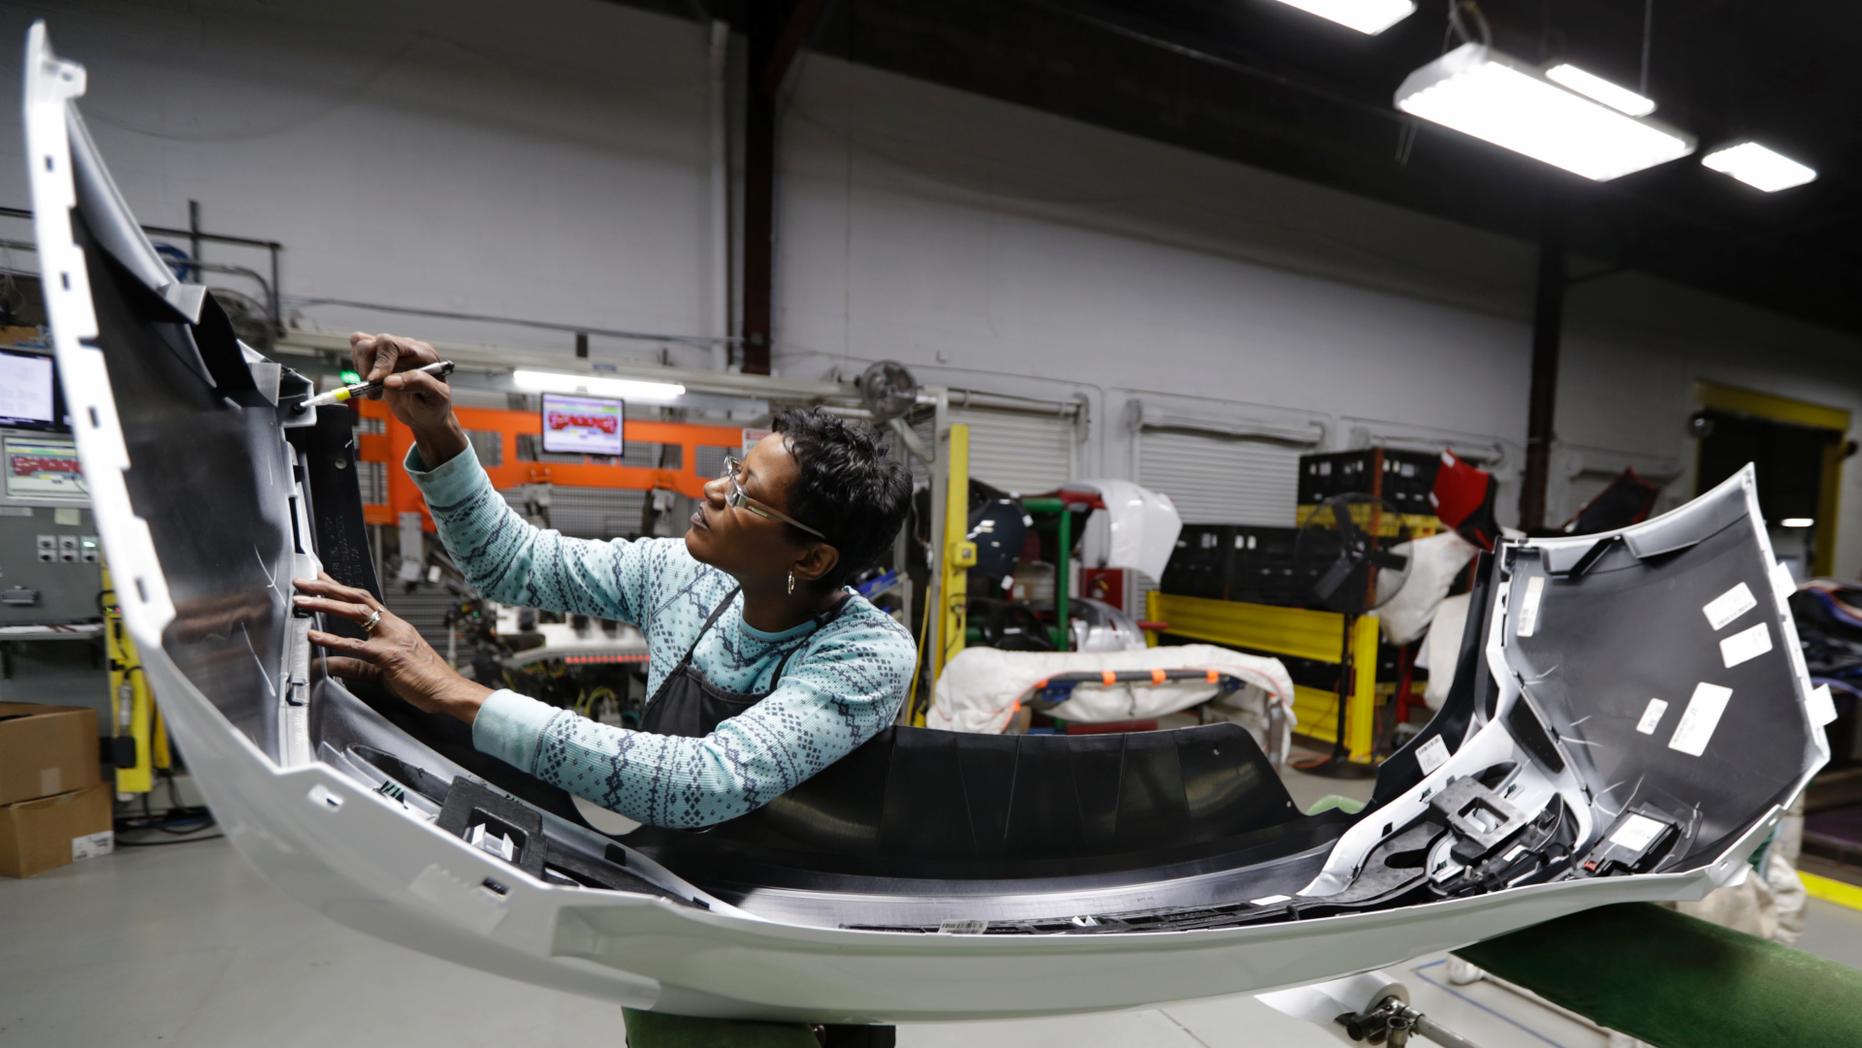 FILE- In this Nov. 28, 2018, file photo final inspector Mary Skinner inspects the rear end of a General Motors Chevrolet Cruze at Jamestown Industries in Youngstown, Ohio. On Monday, Dec. 3, the Institute for Supply Management, a trade group of purchasing managers, issues its index of manufacturing activity for November. (AP Photo/Tony Dejak, File)